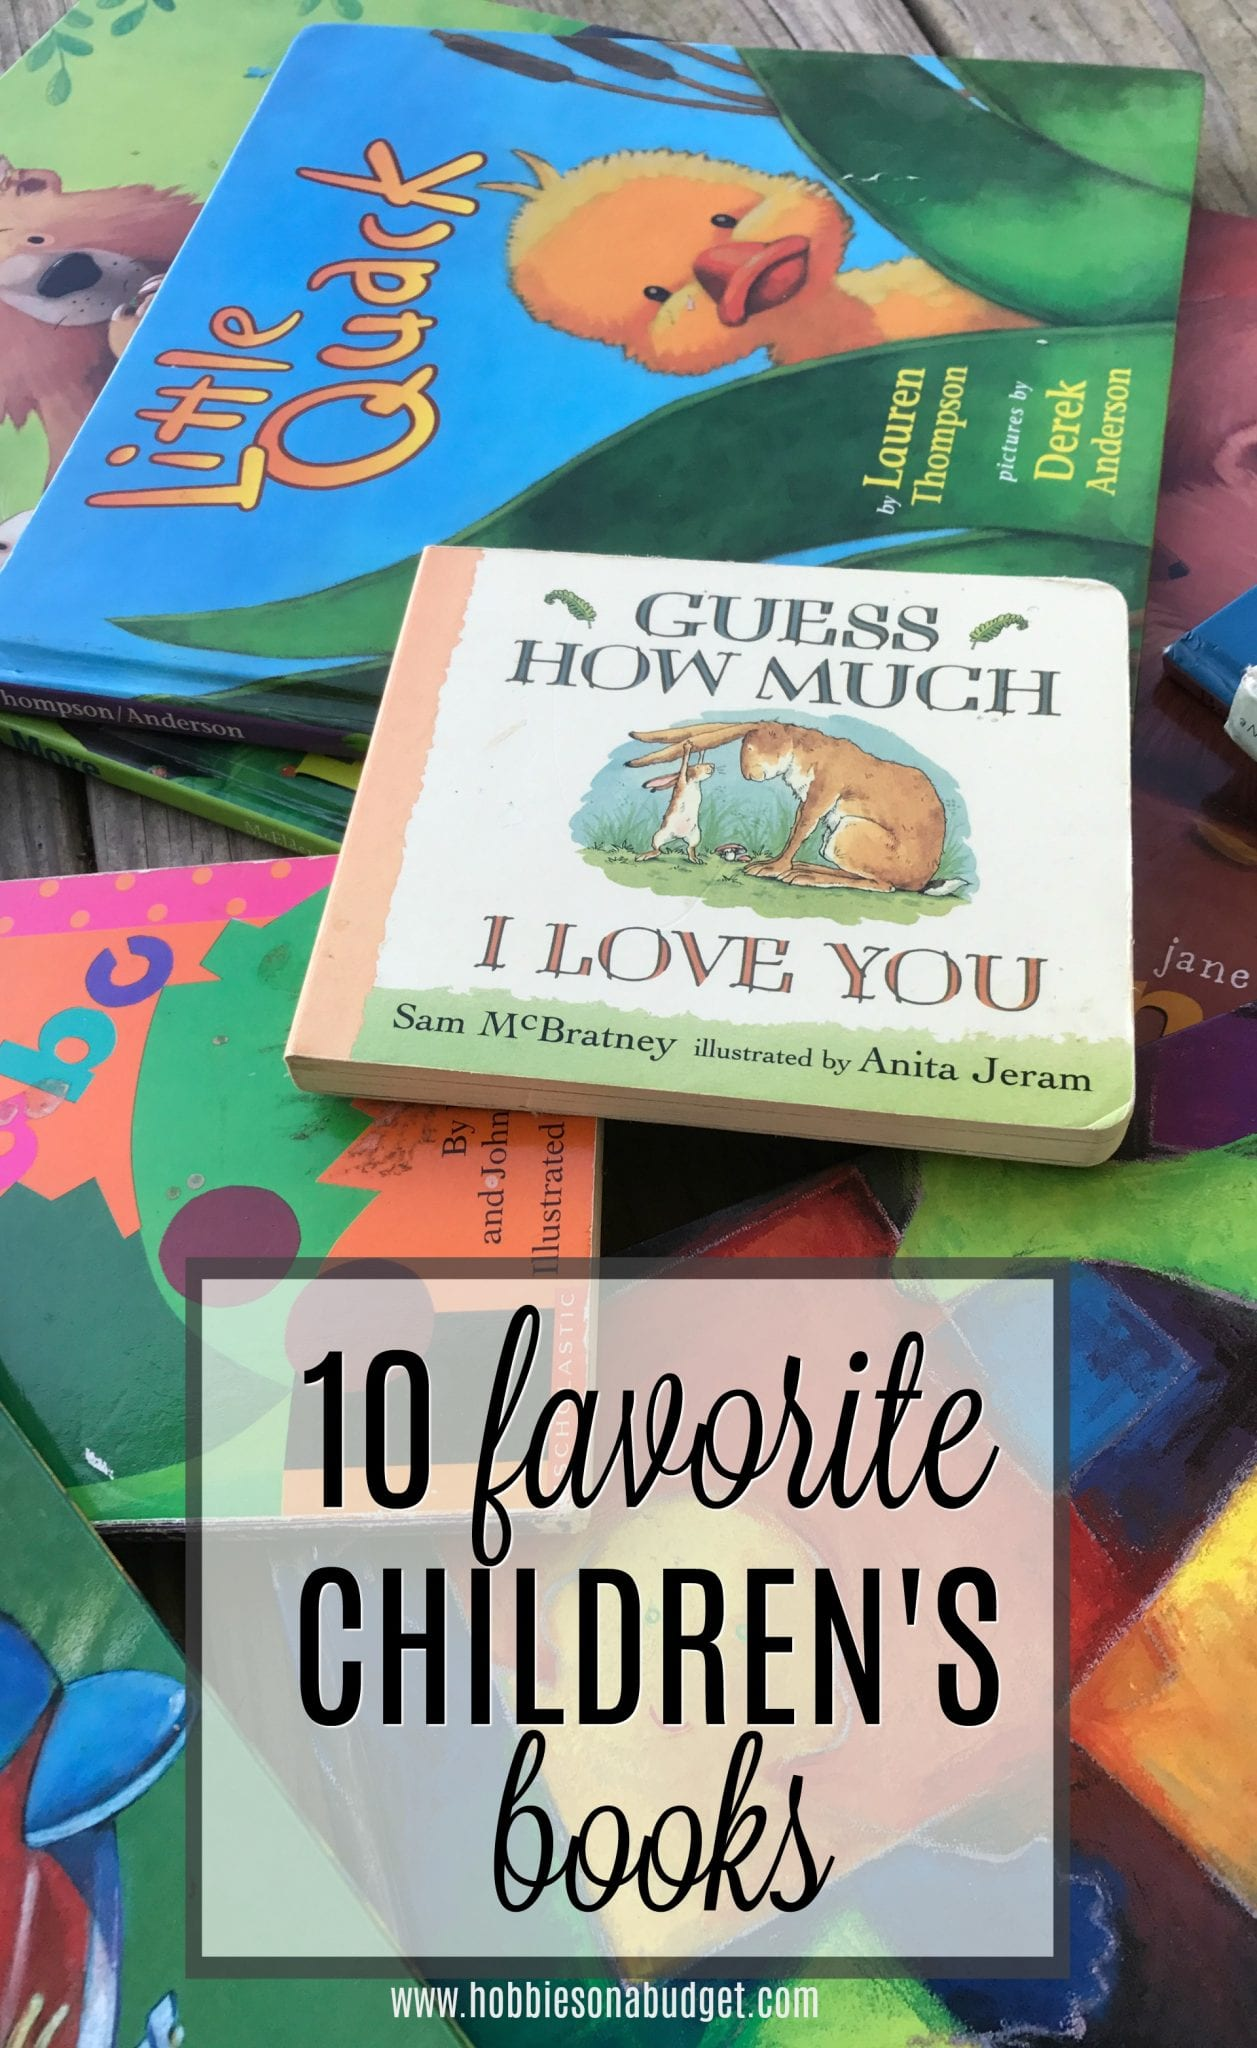 When my kids were little, we read books all the time and we've read hundred's of books together.  I've collected several of our favorite children's books to share with you.  Here's my 10 favorite children's books - Mom-approved and Children Thumbs Up!!